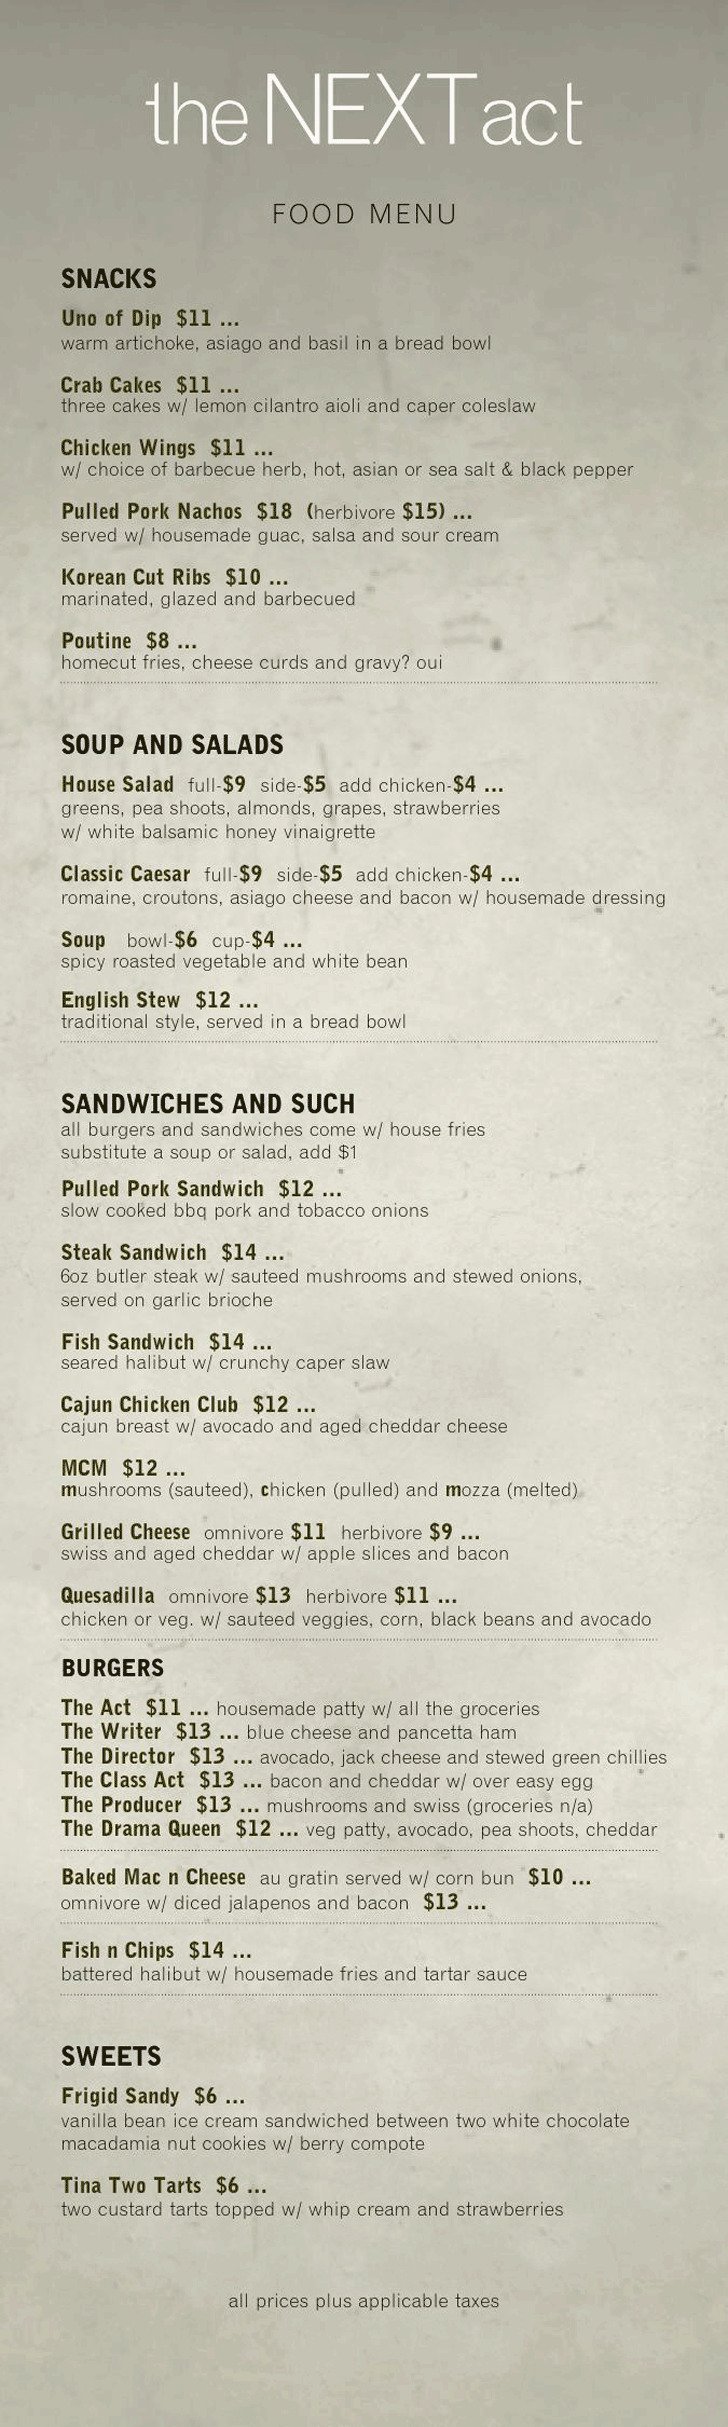 Food Menu - the Next Act Pub